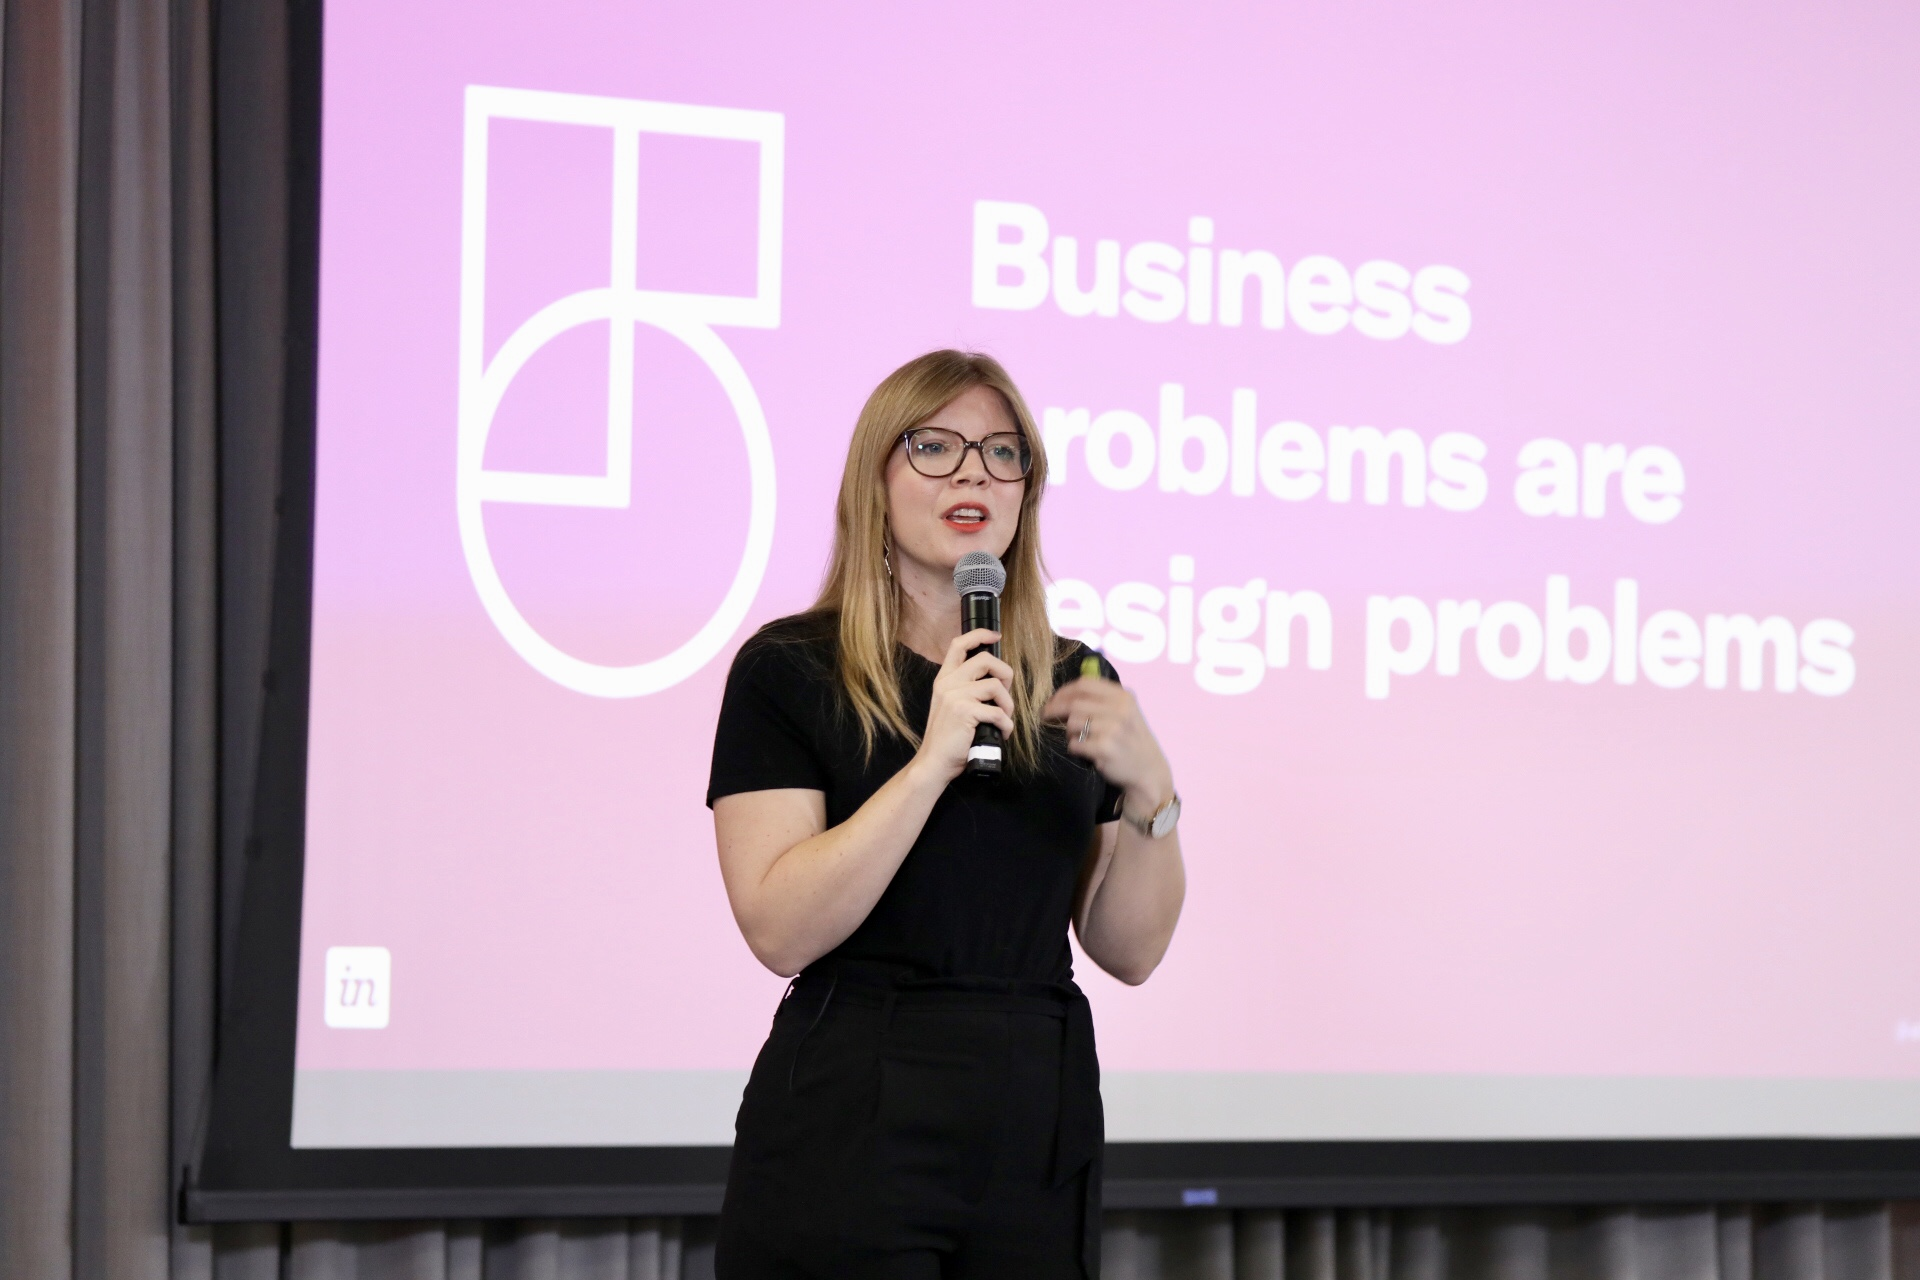 Me in front of a slide reading 'Business problems are design problems'